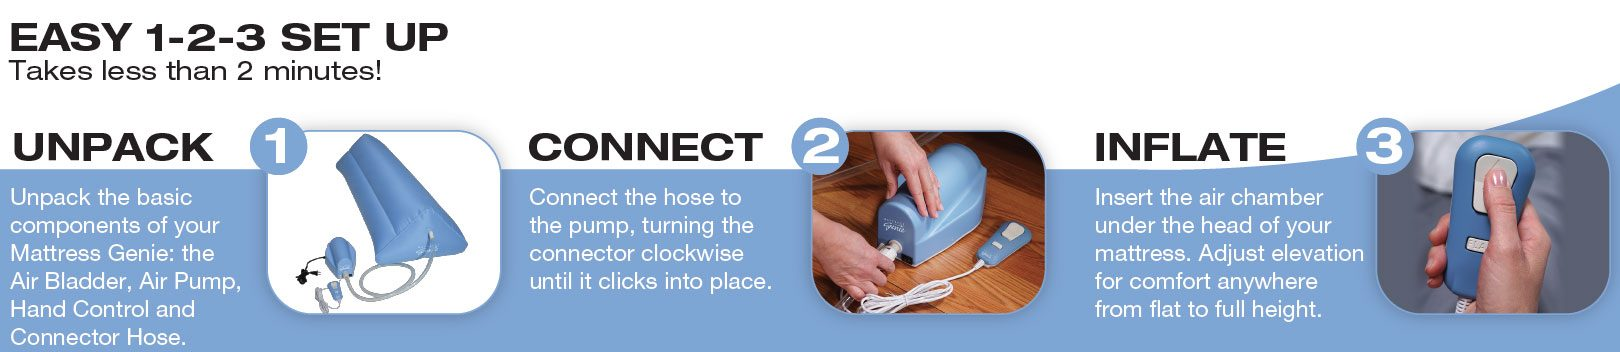 Mattress Genie is easy to set up in minutes!